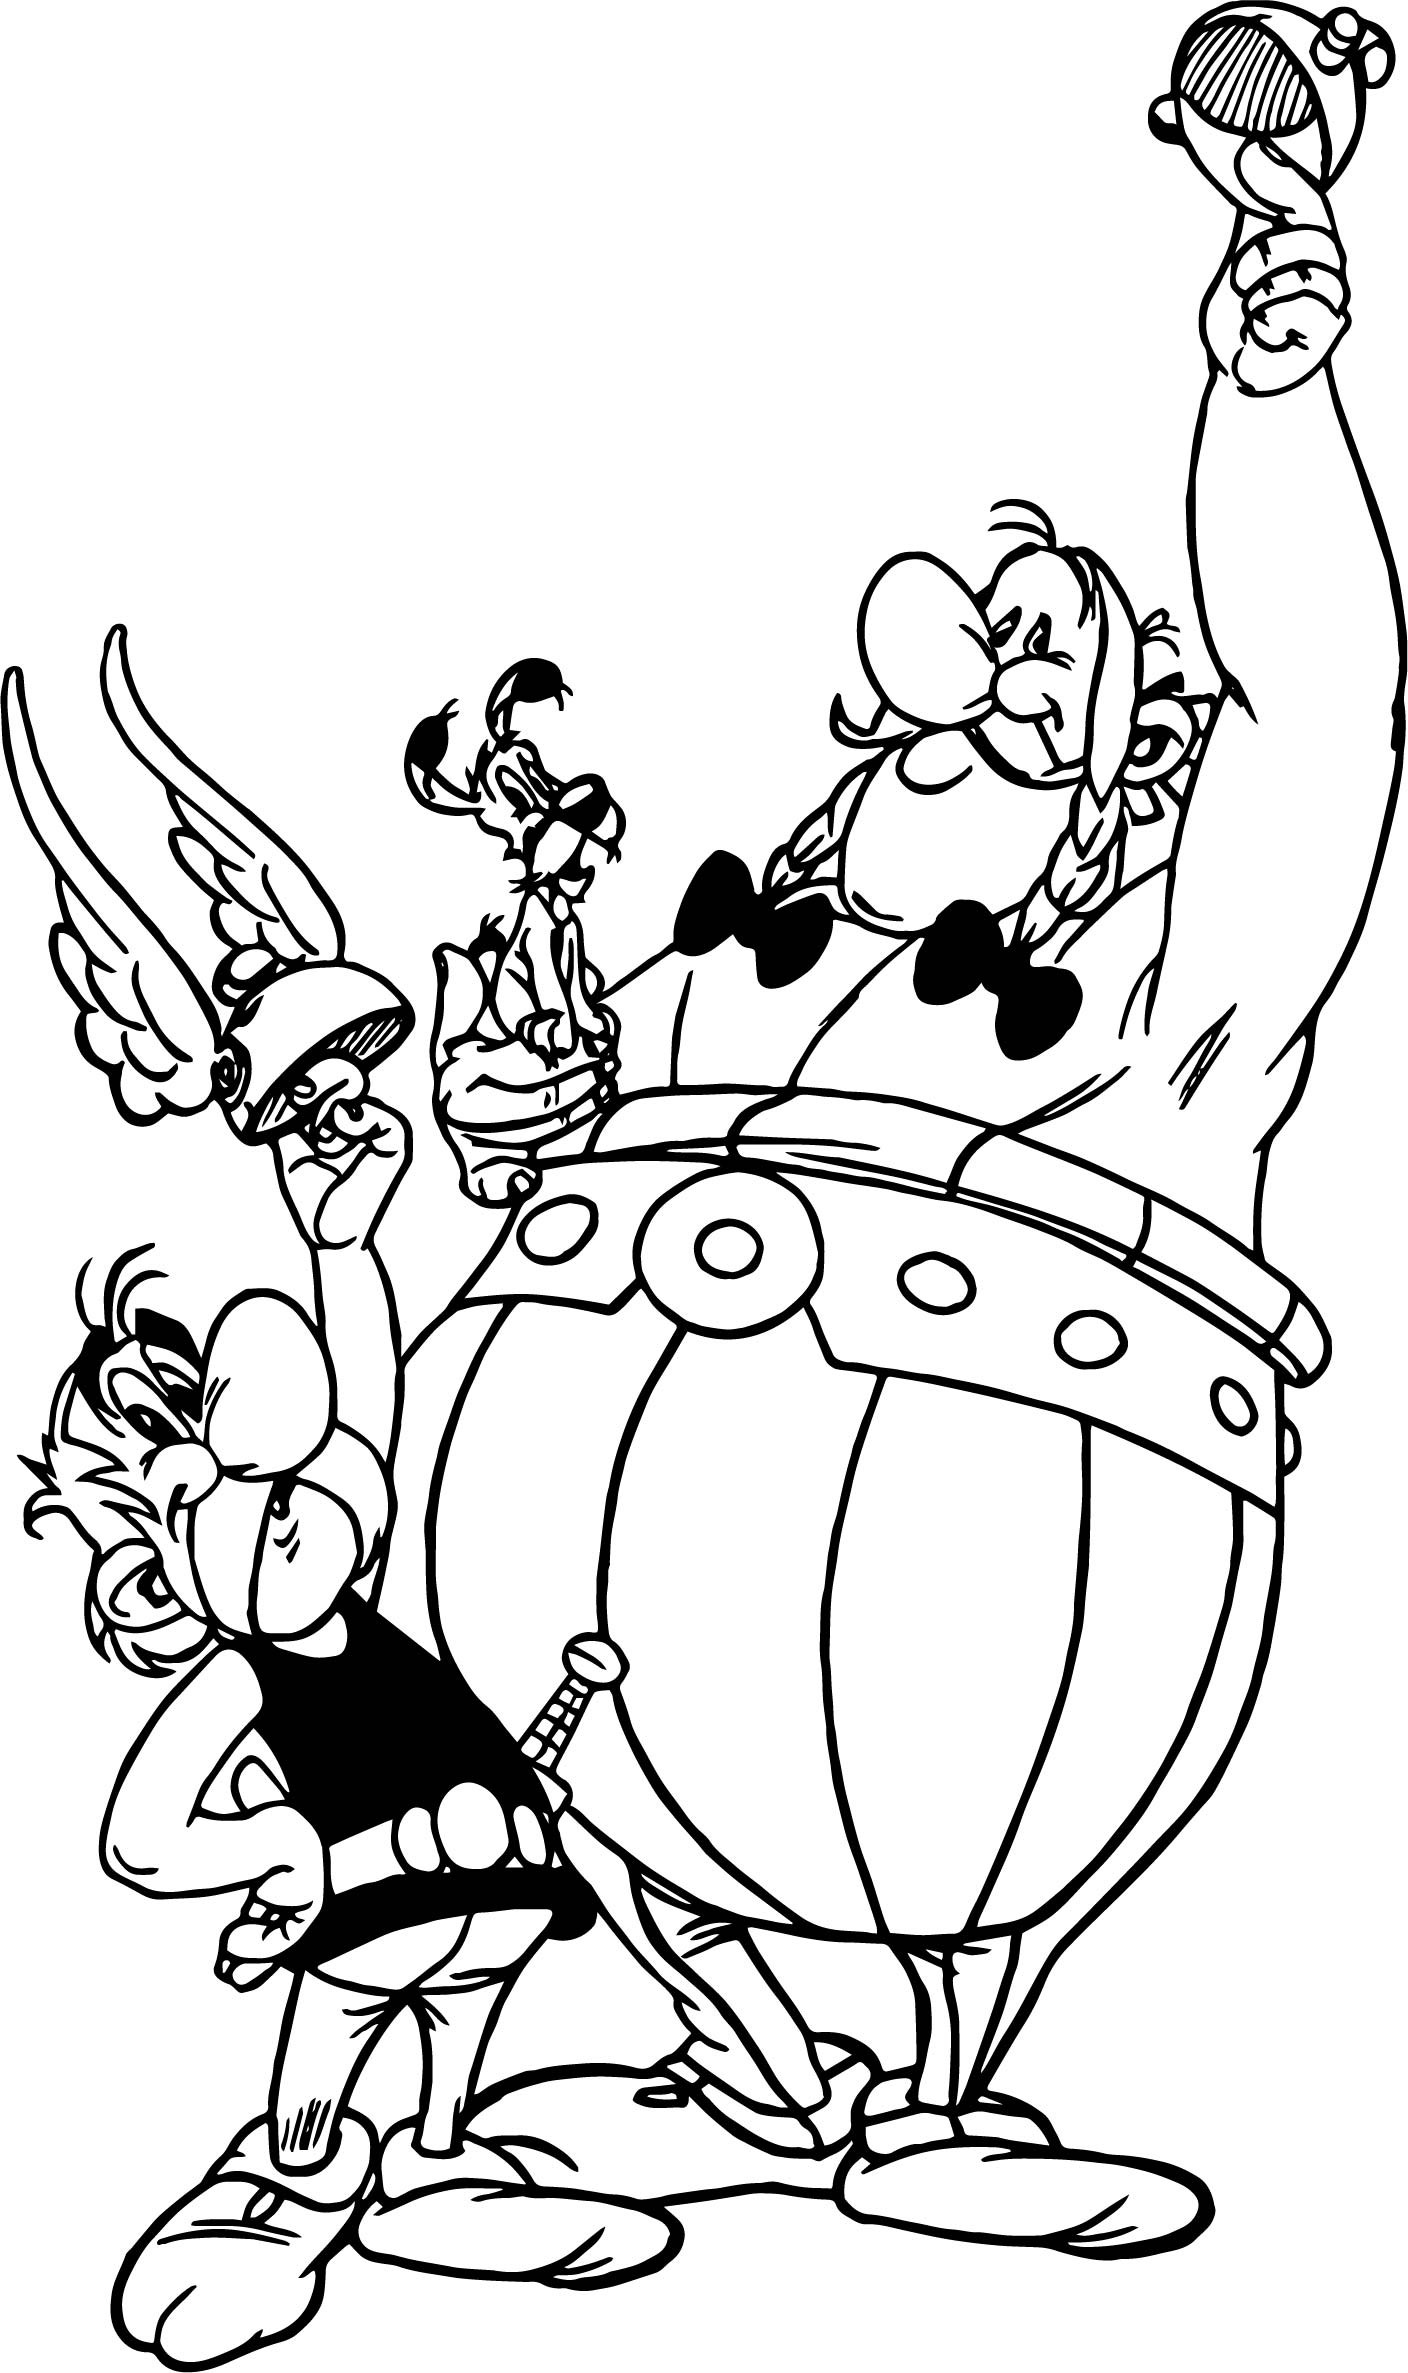 1408x2373 Asterix And Obelix Coloring Pages For Kids Fresh Asterix Obelix